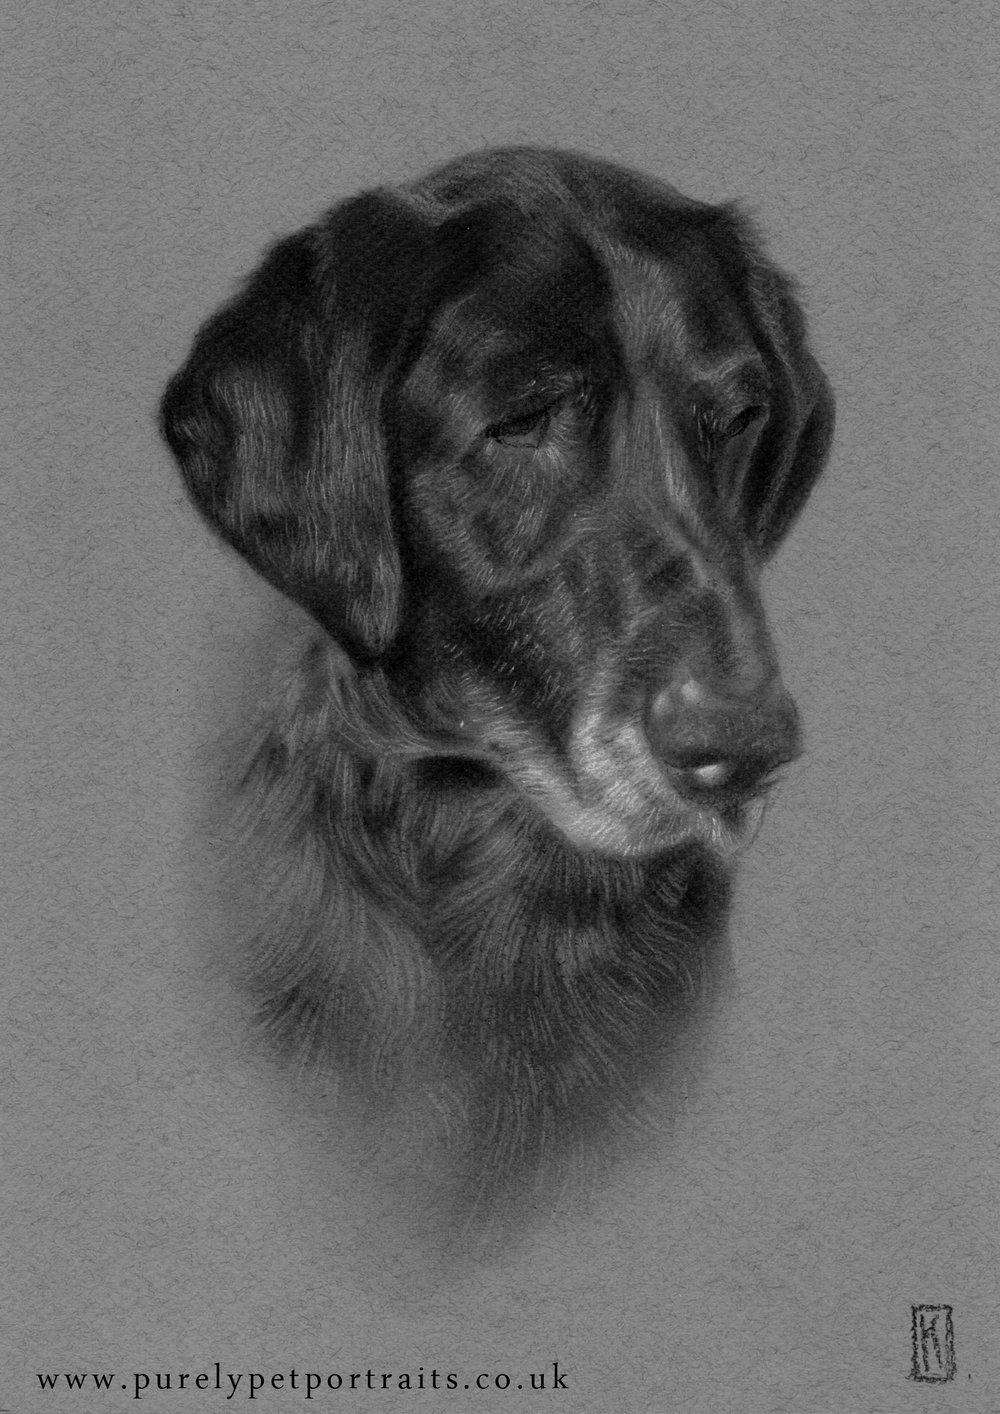 From £120 - for A4 single portrait